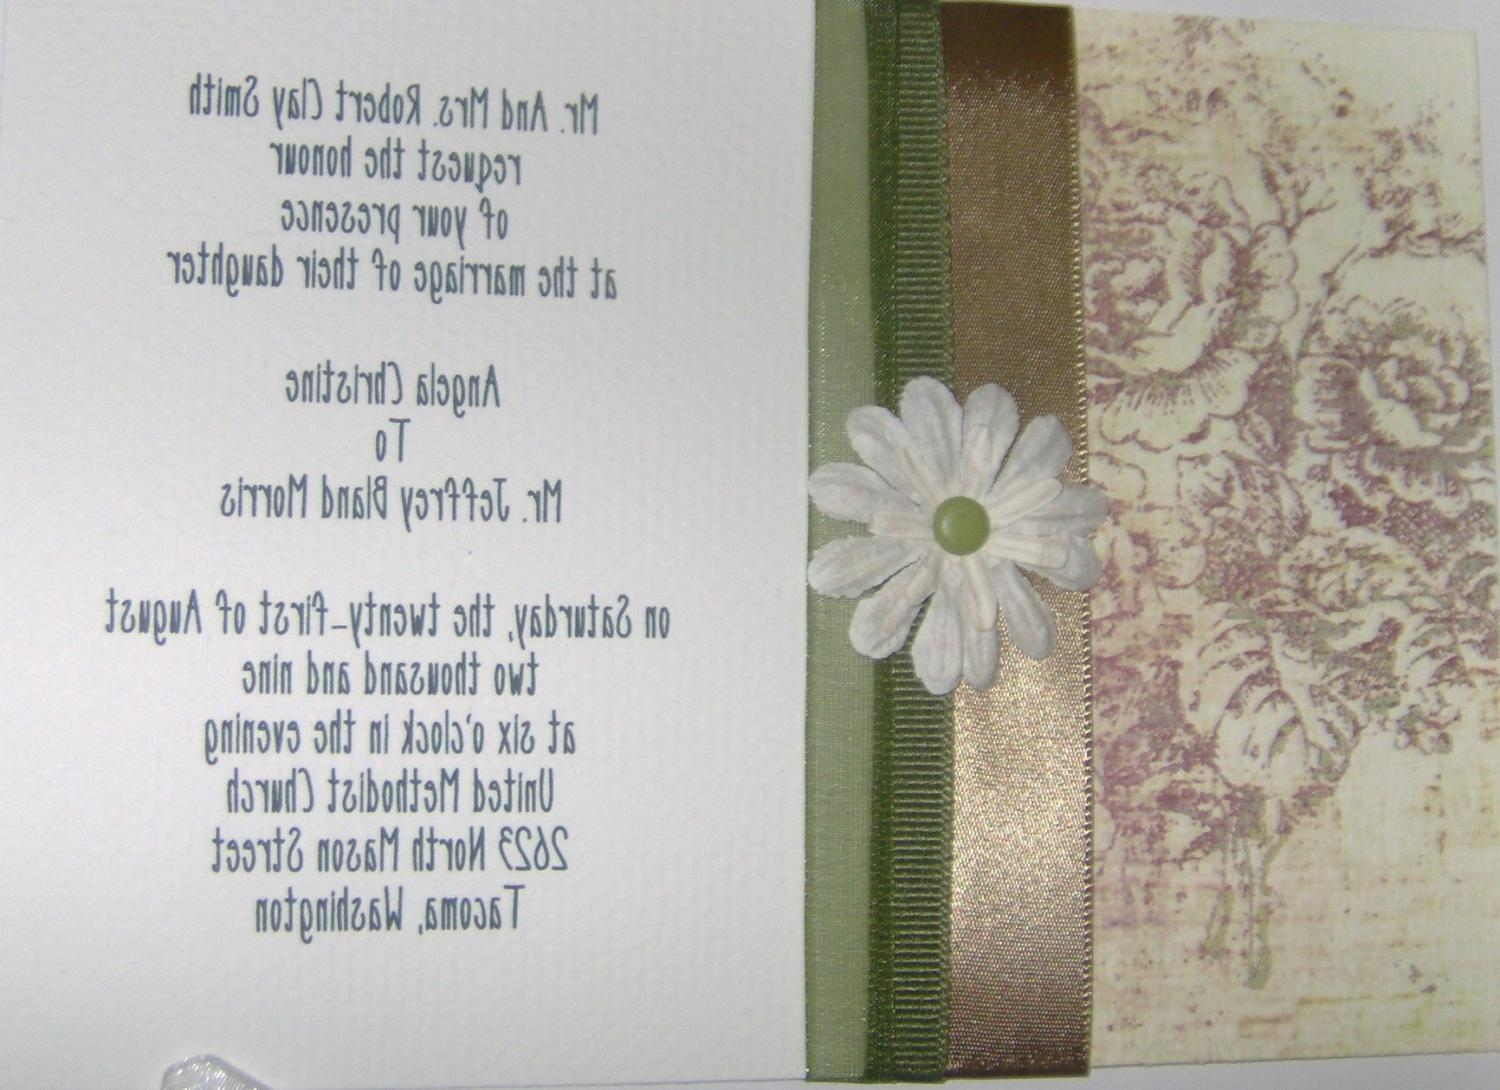 5 x 7 Custom Wedding Invitation With Decorative Paper, Ribbons,